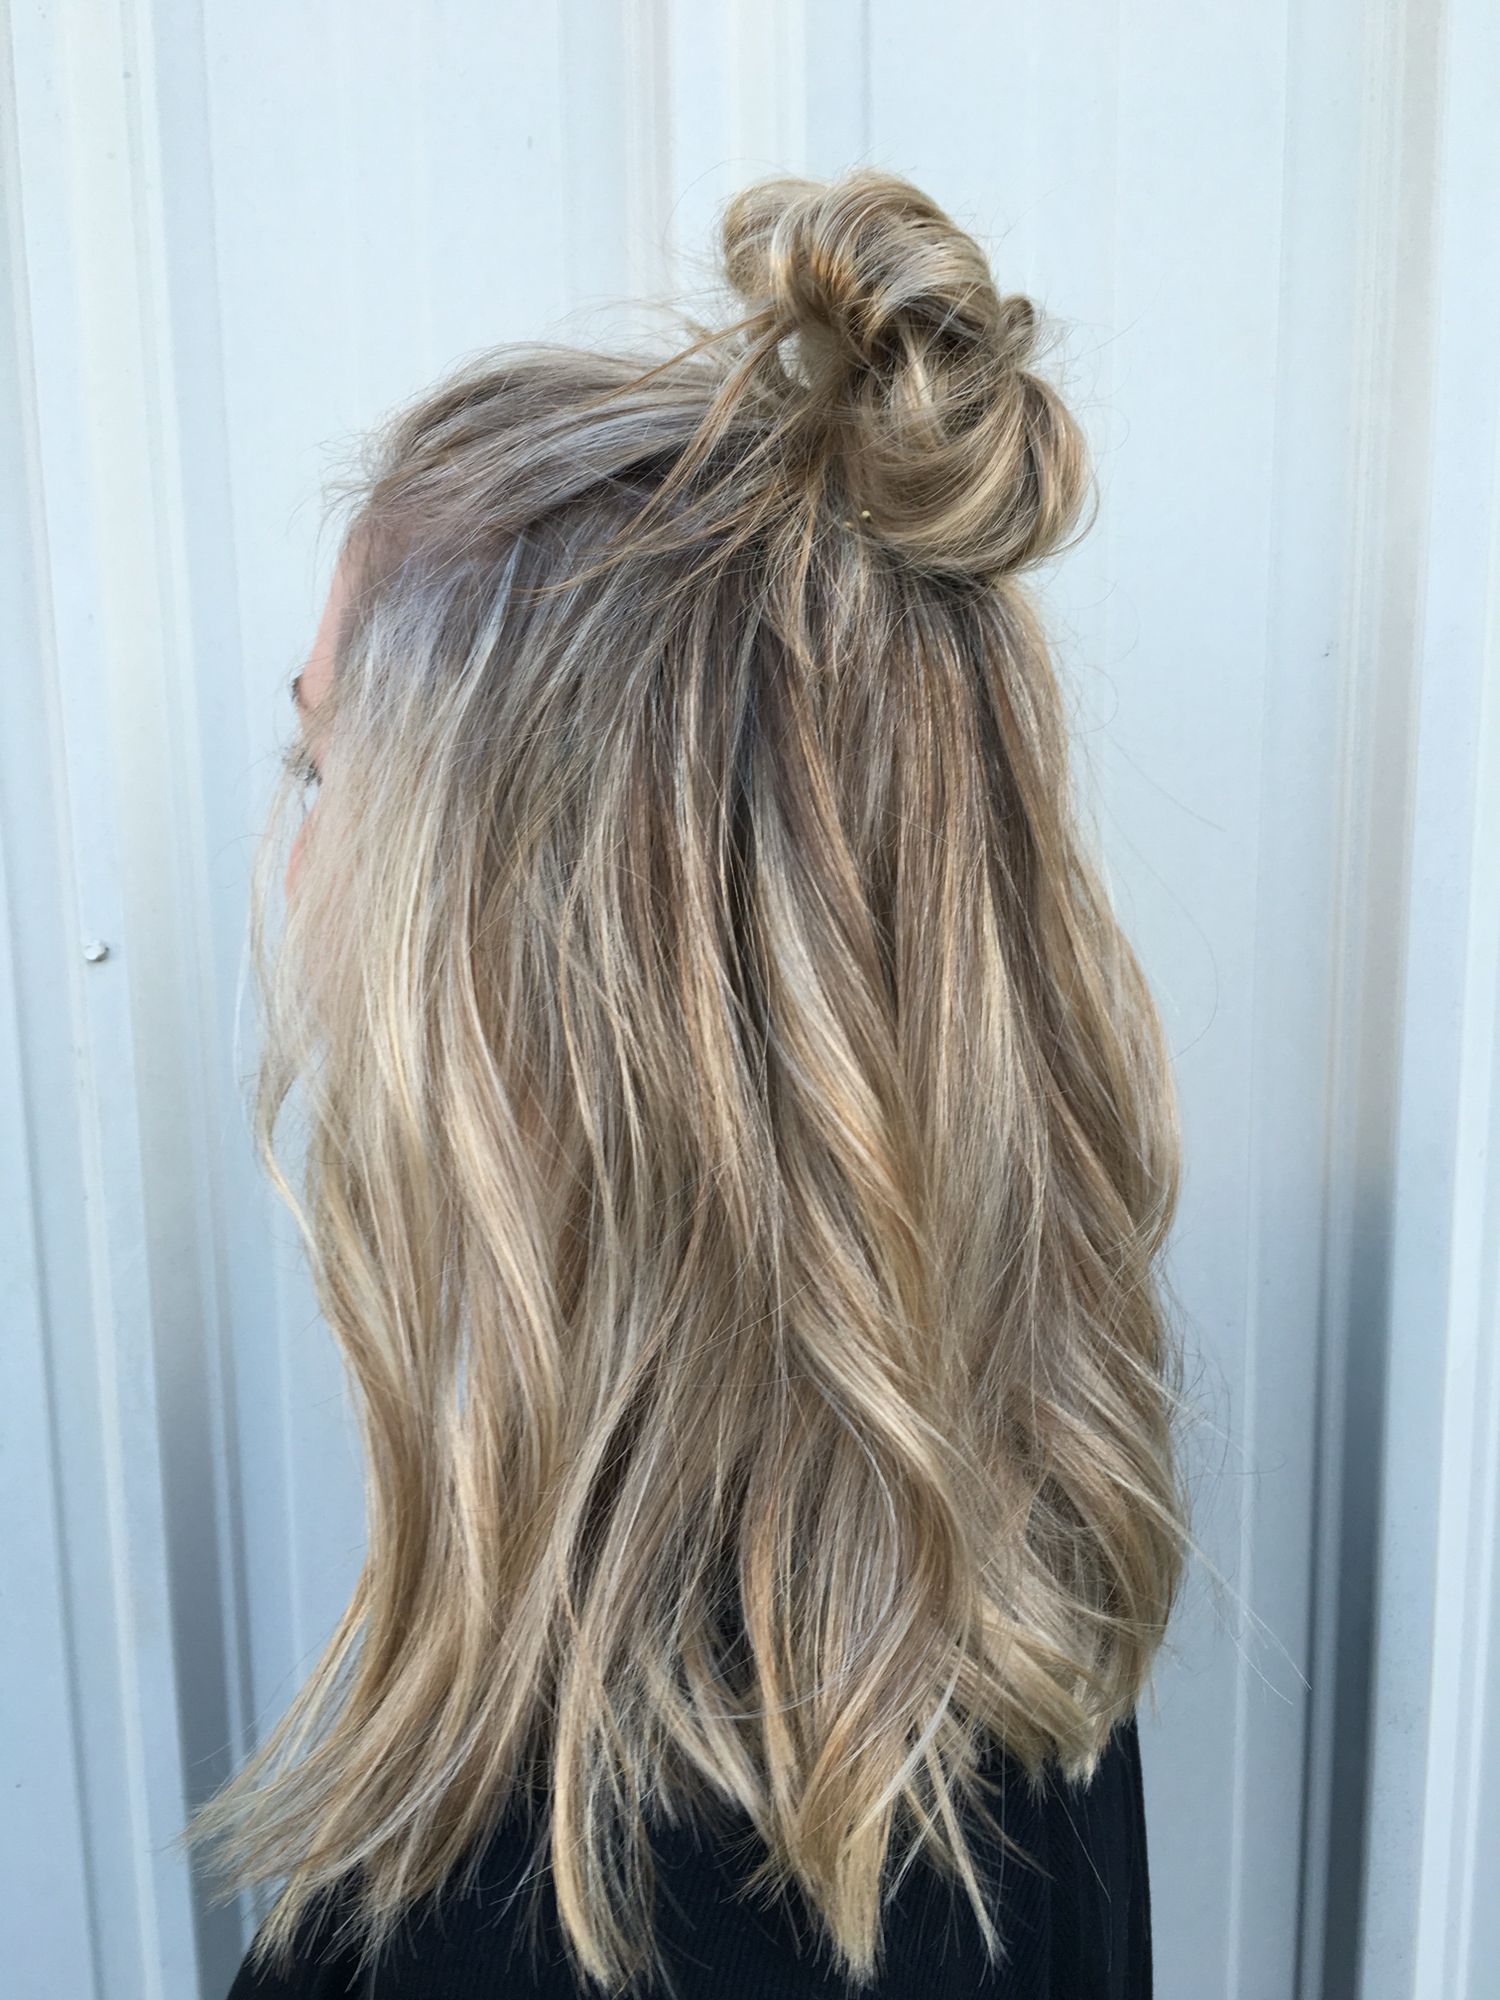 Such A Cute Hairstyle For Everyday Life It S So Fun And Easy To Do We Are Also Sandy Blonde Hair Hair Styles Blonde Hair Looks